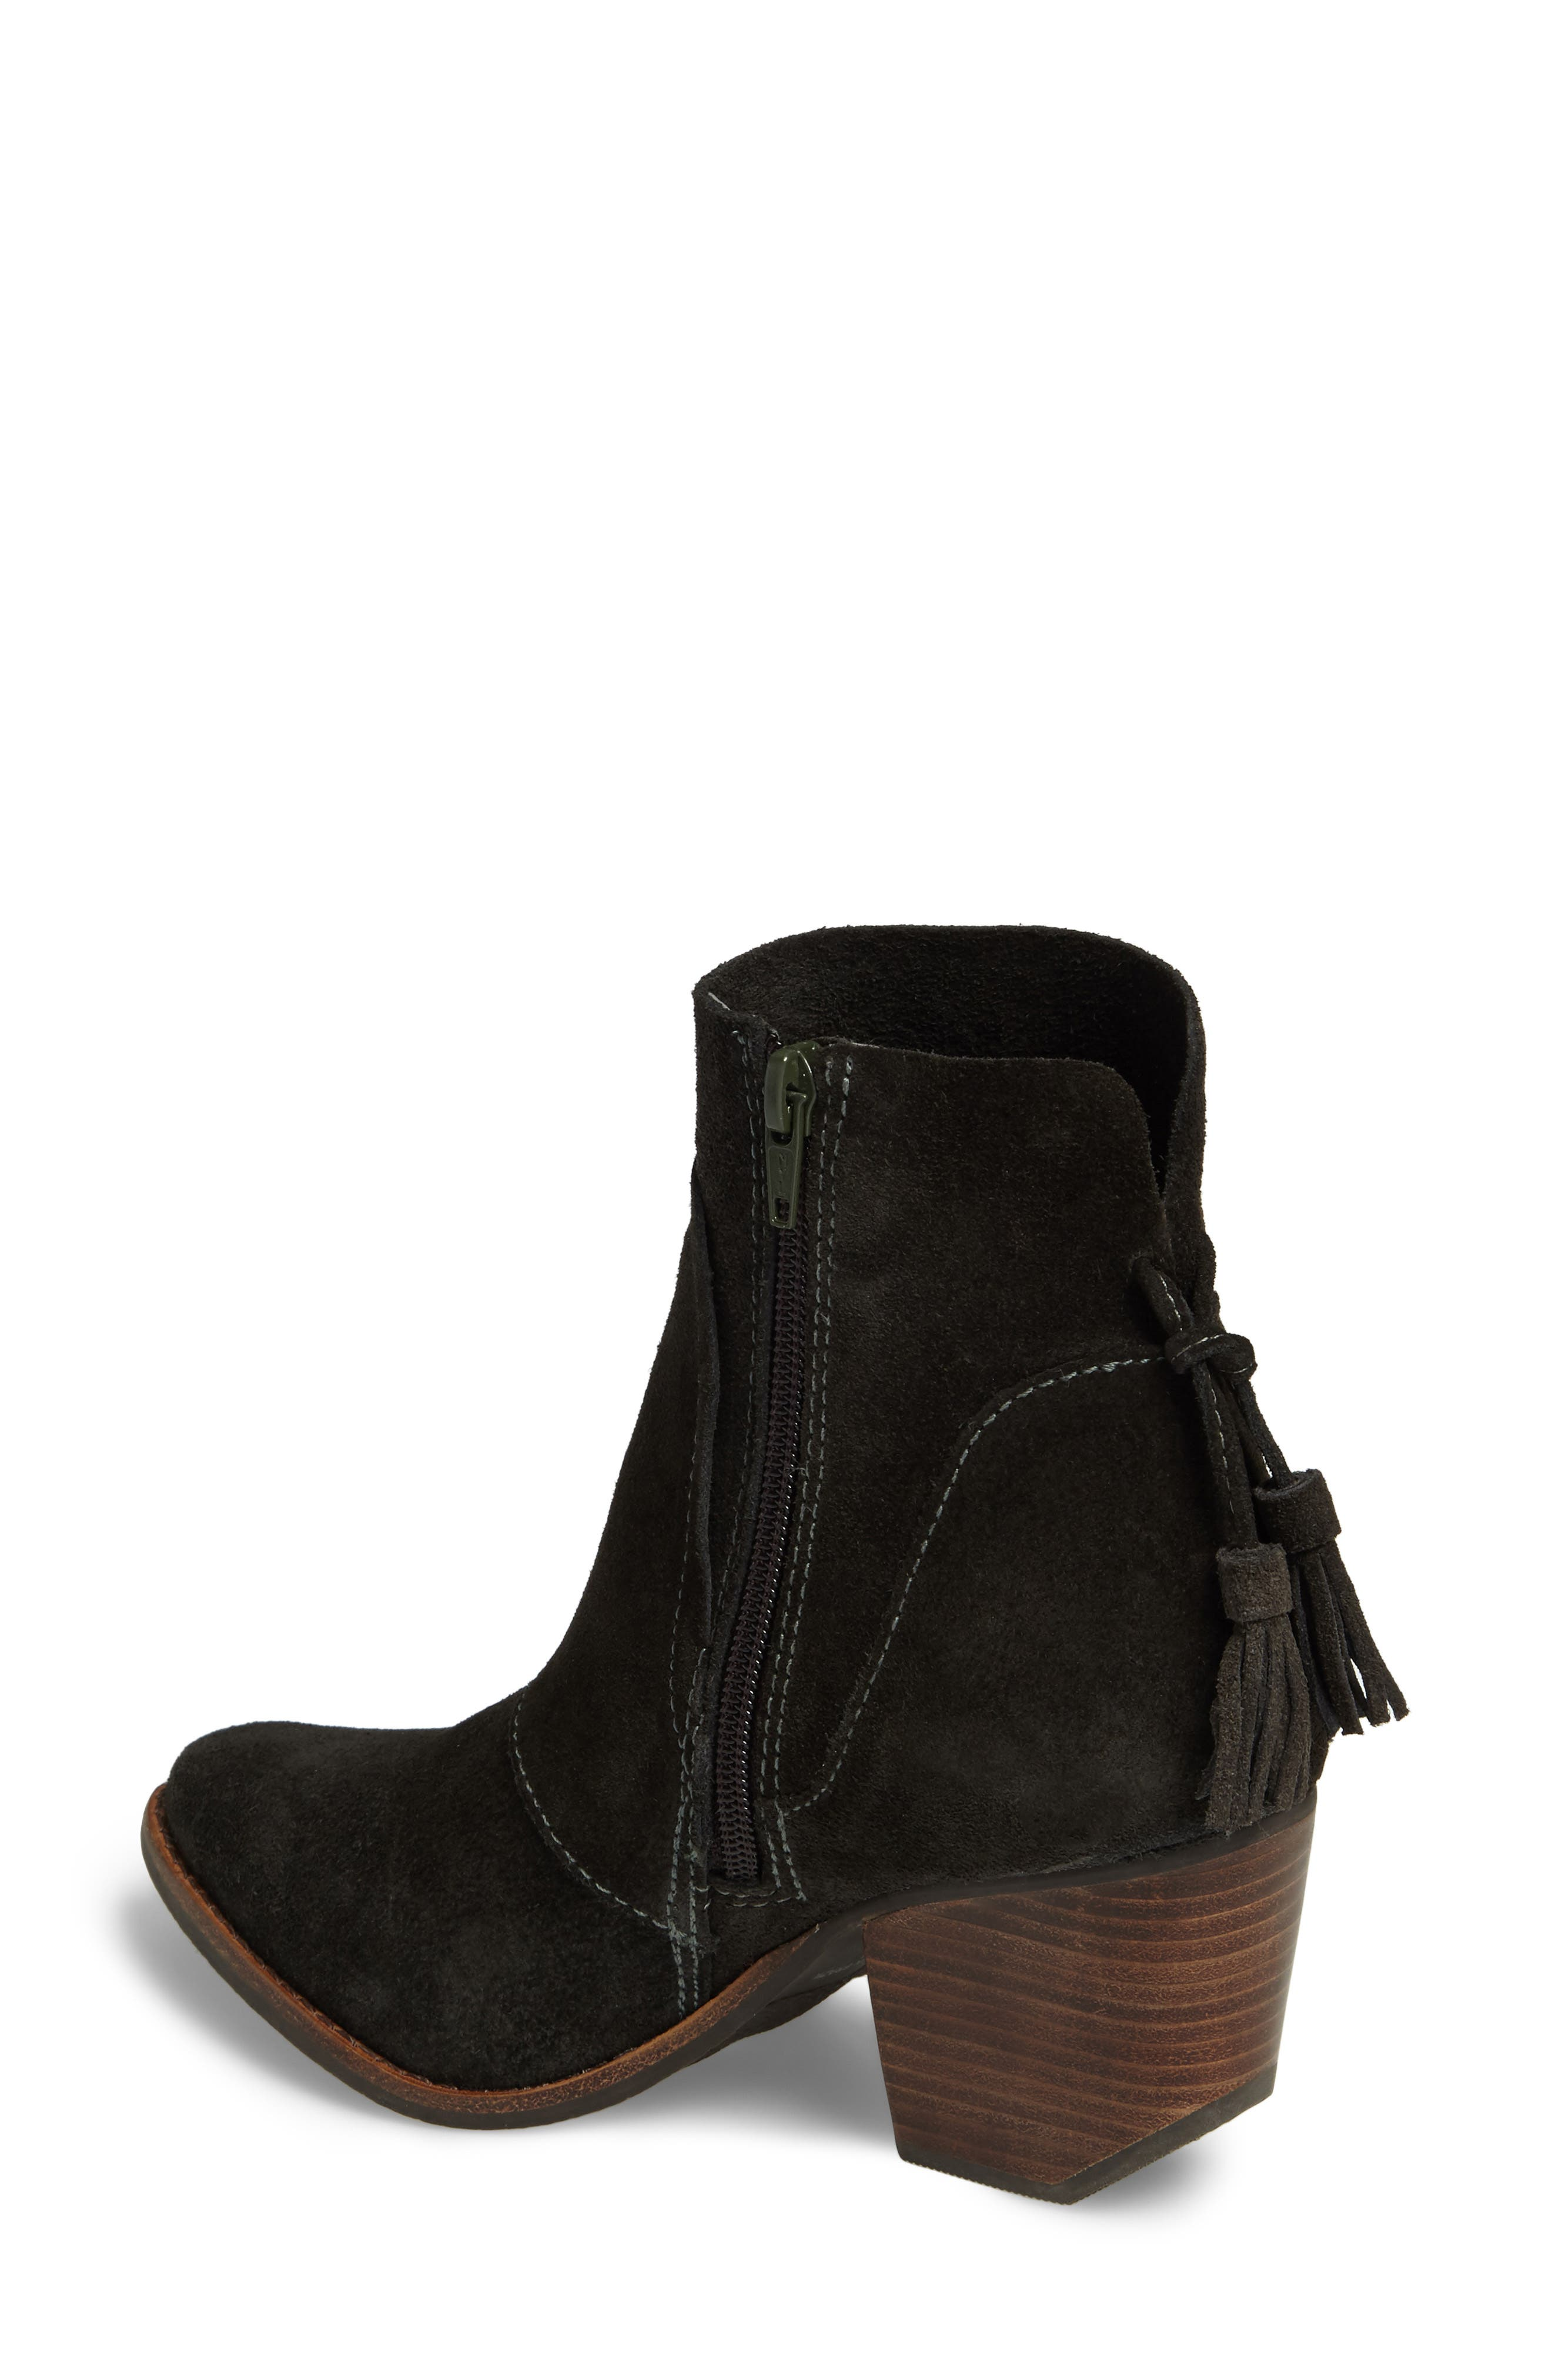 Laney Notched Heel Bootie,                             Alternate thumbnail 2, color,                             Forest Suede